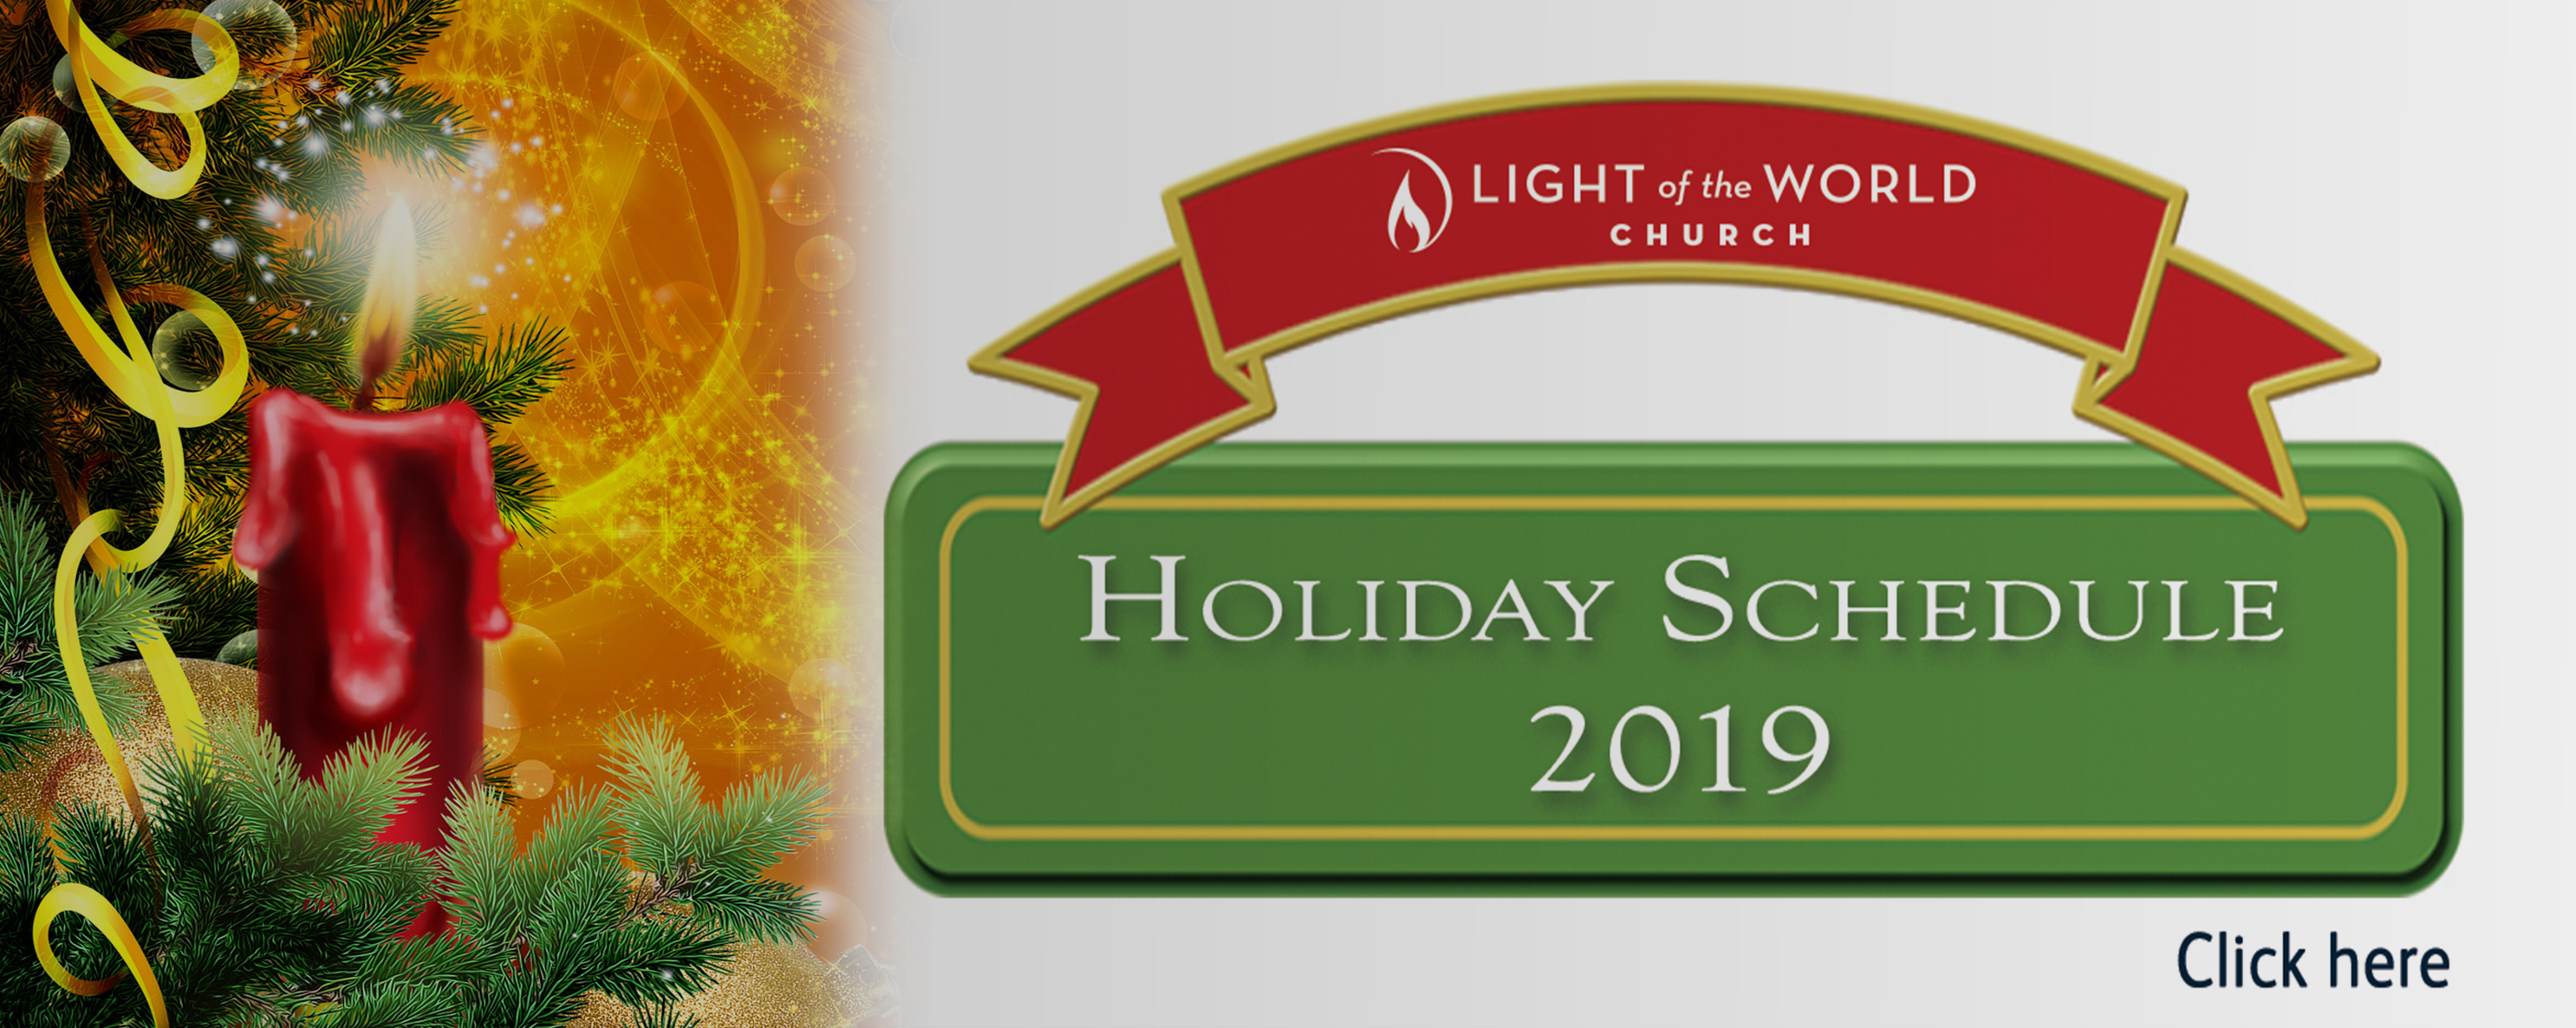 Holiday Schedule 2019-rotator